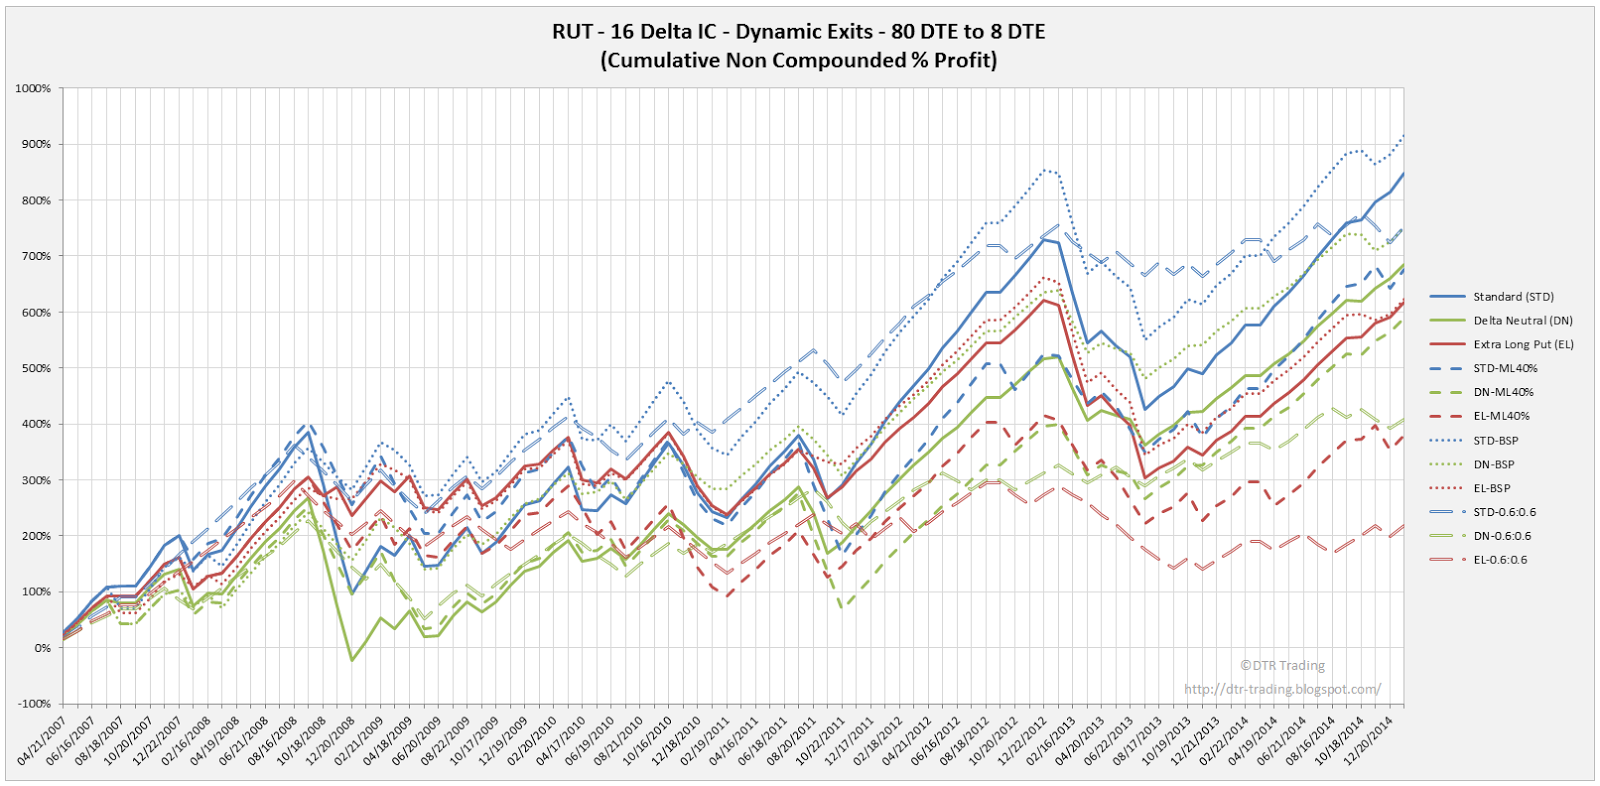 Iron Condor Dynamic Exit Equity Curves RUT 80 DTE 16 Delta All Versions